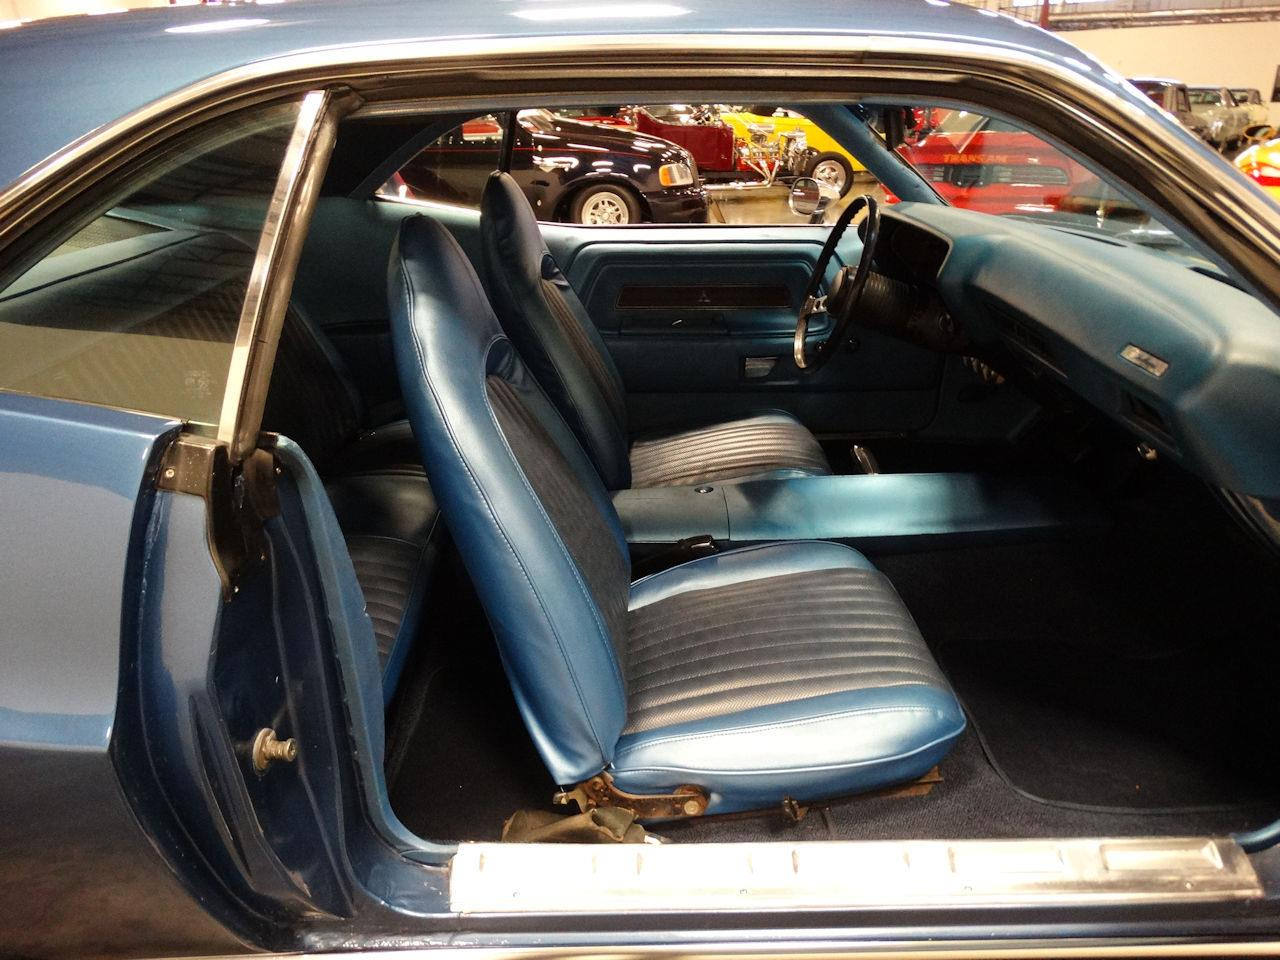 Large Picture of '73 Dodge Challenger located in Tennessee - $24,995.00 - MC7T